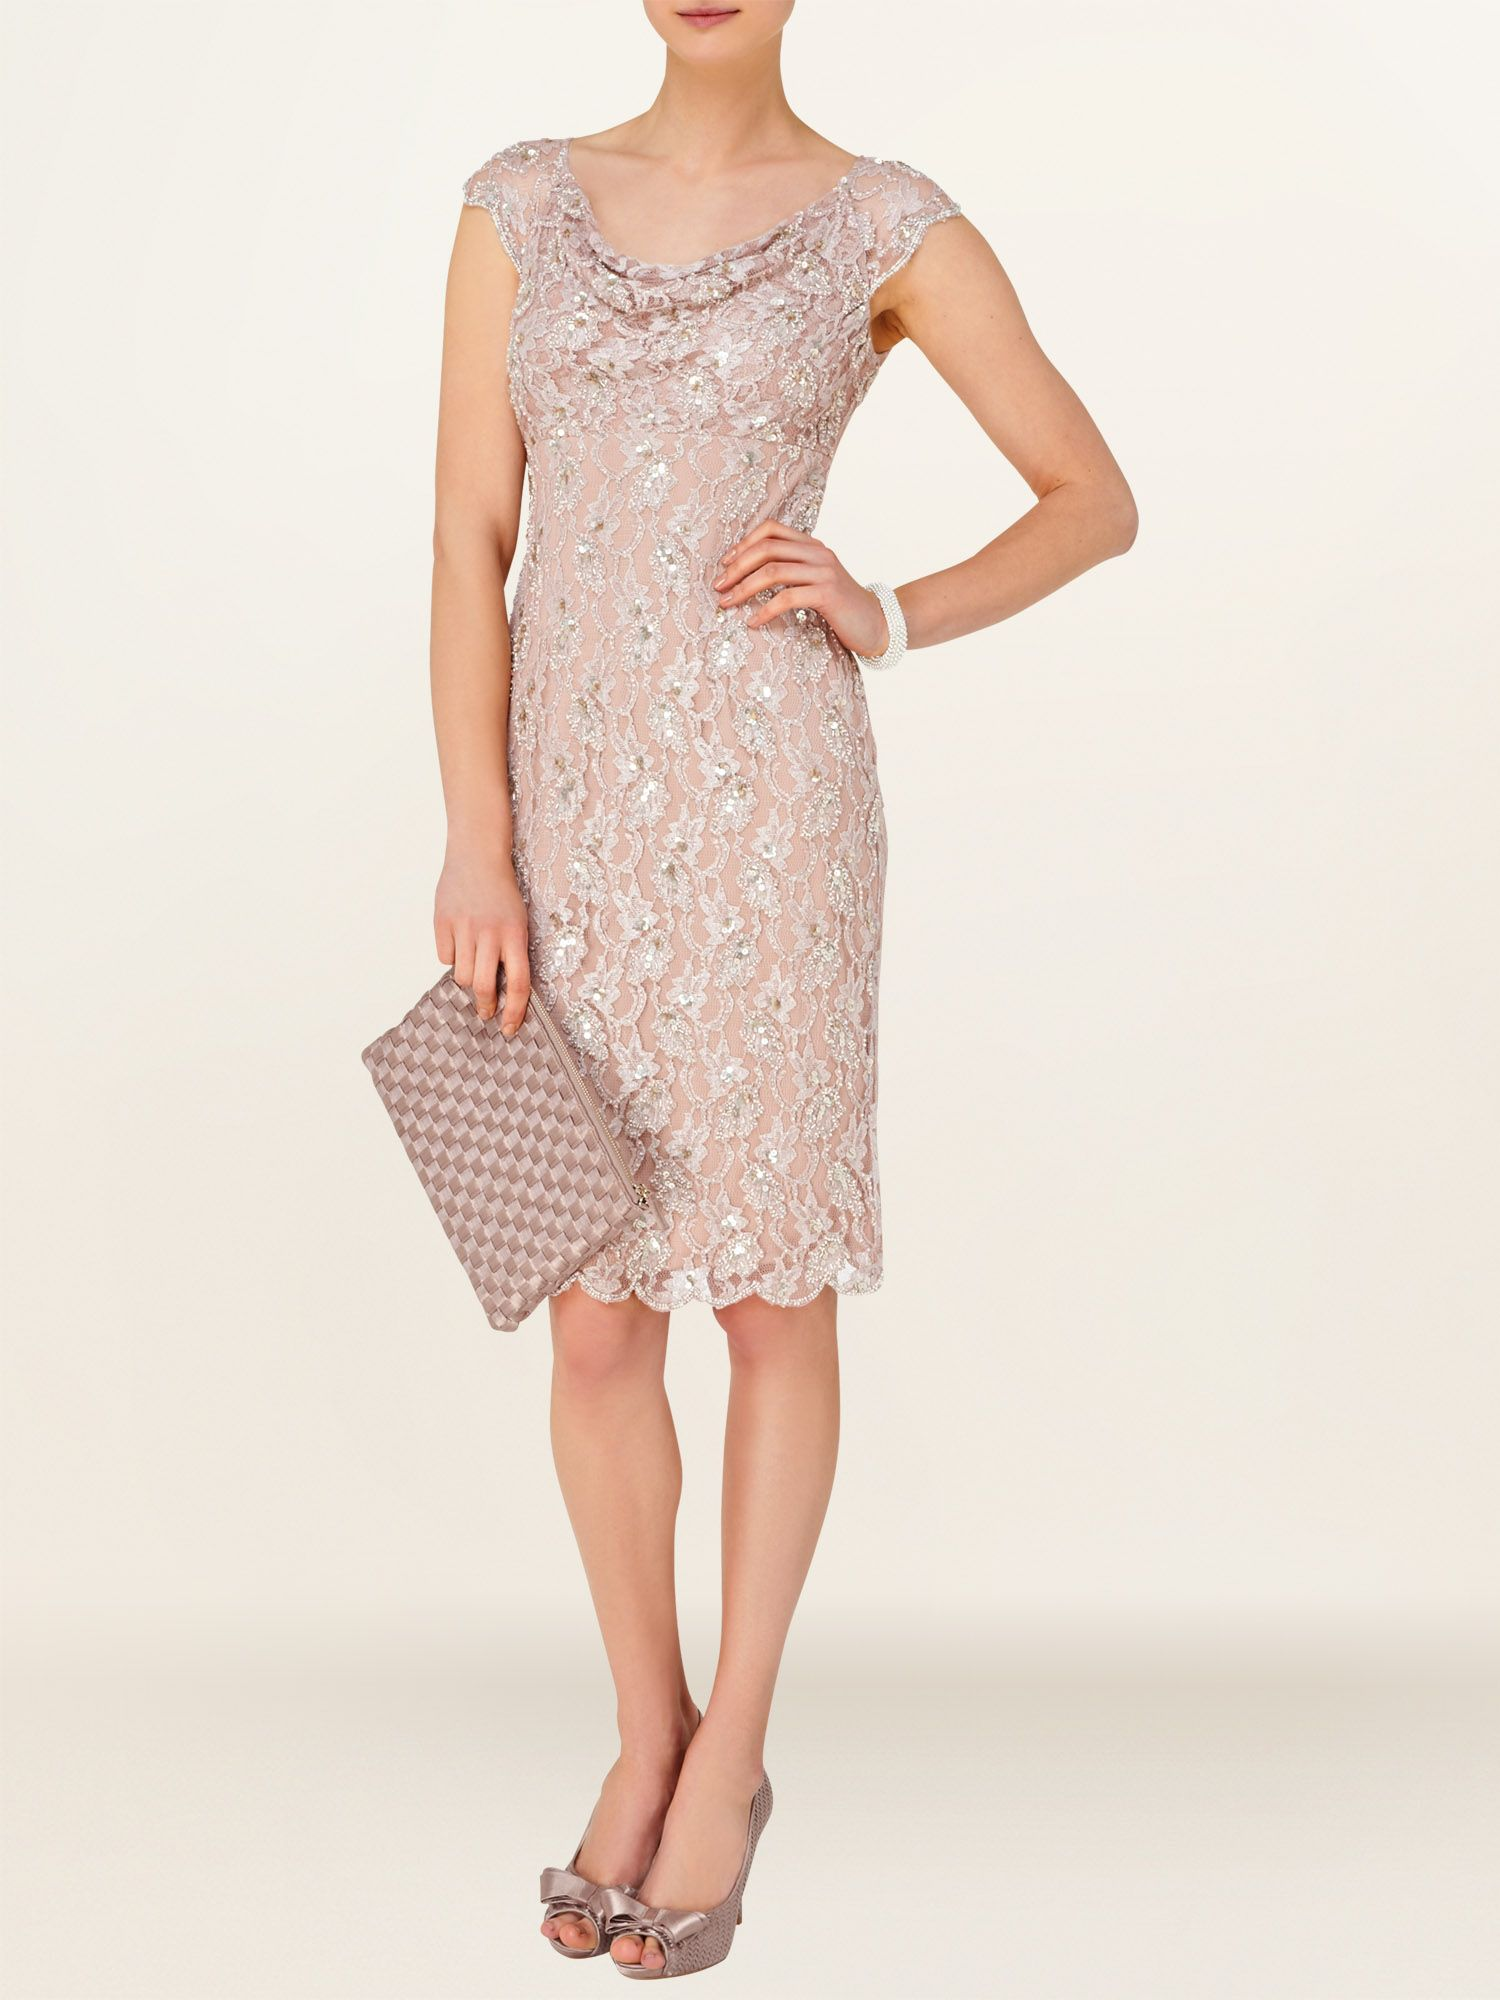 Emma embellished dress